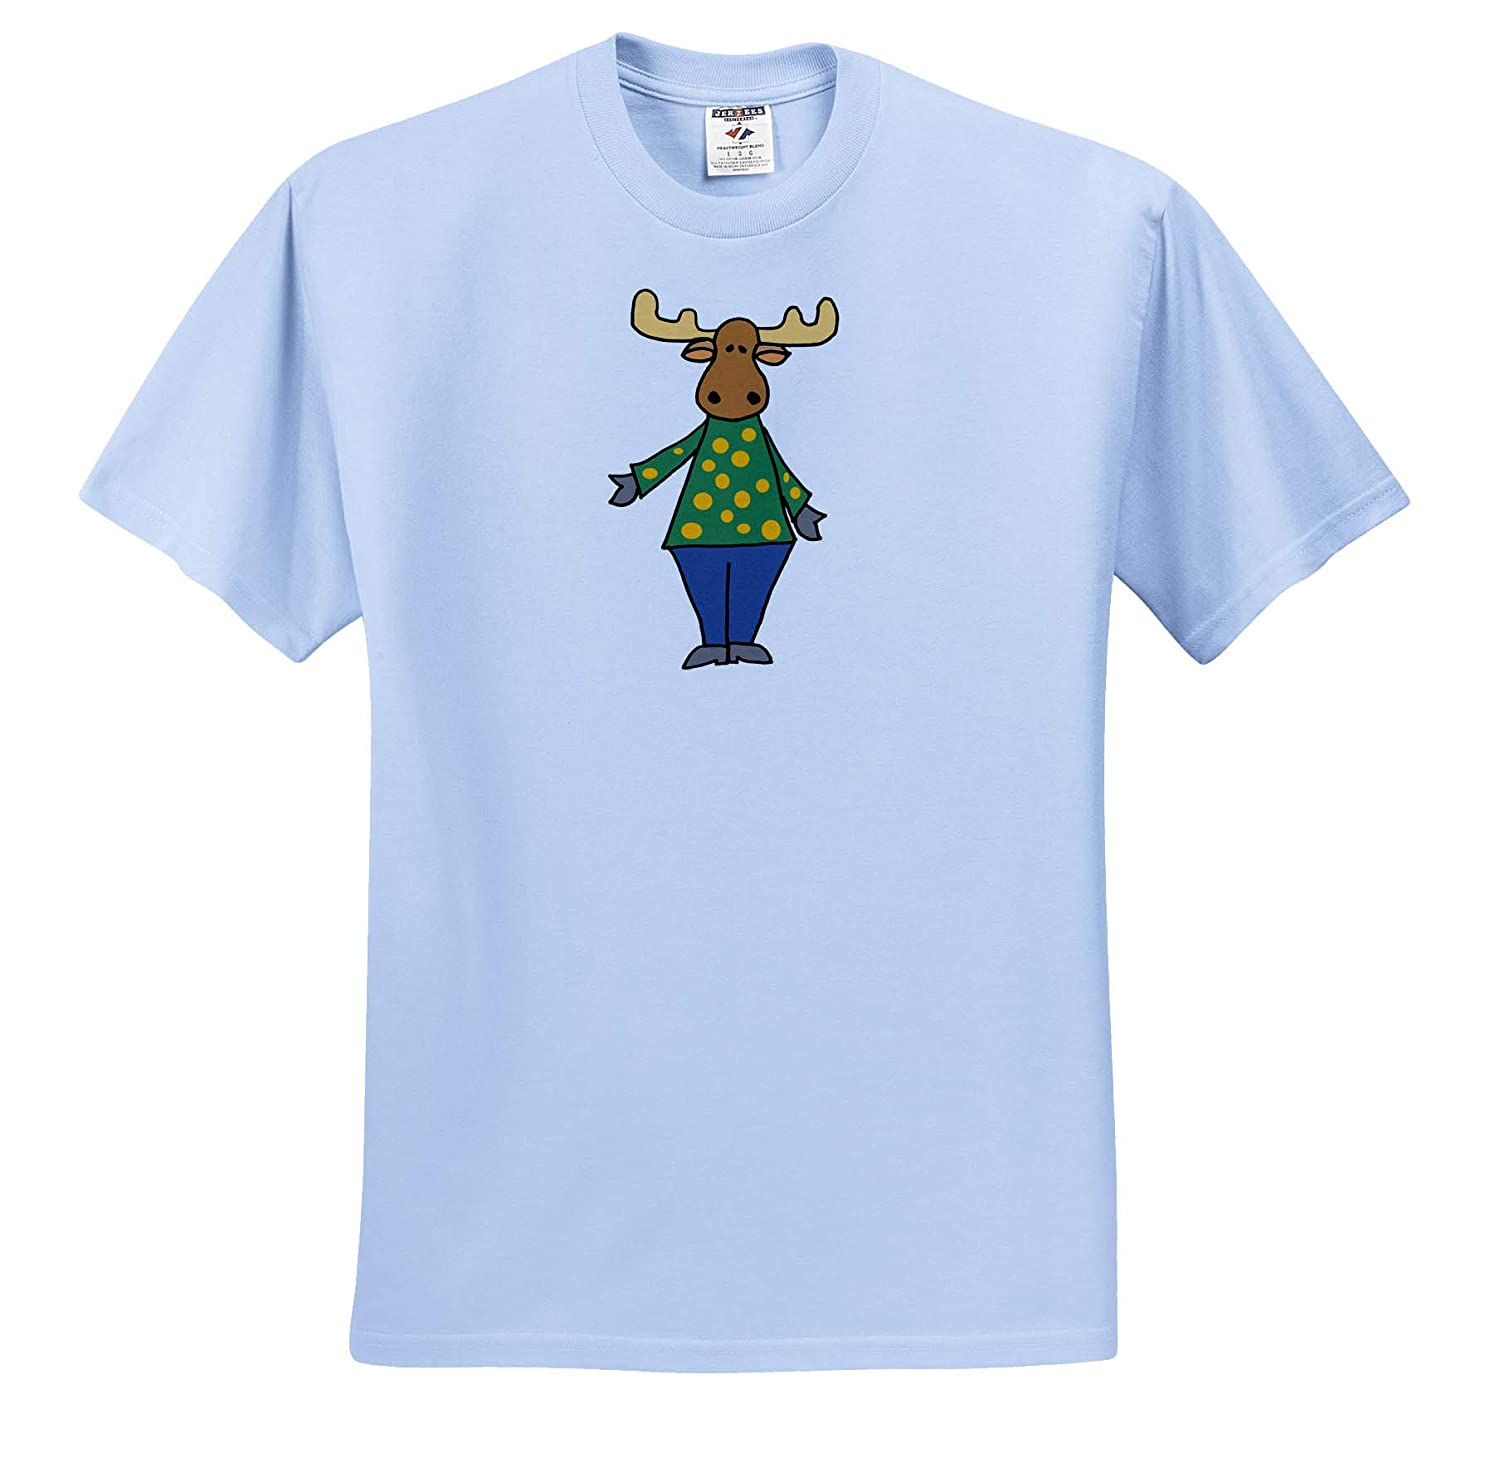 T-Shirts Animals Cute Funny Moose with Polka Dotted Shirt Cartoon 3dRose All Smiles Art